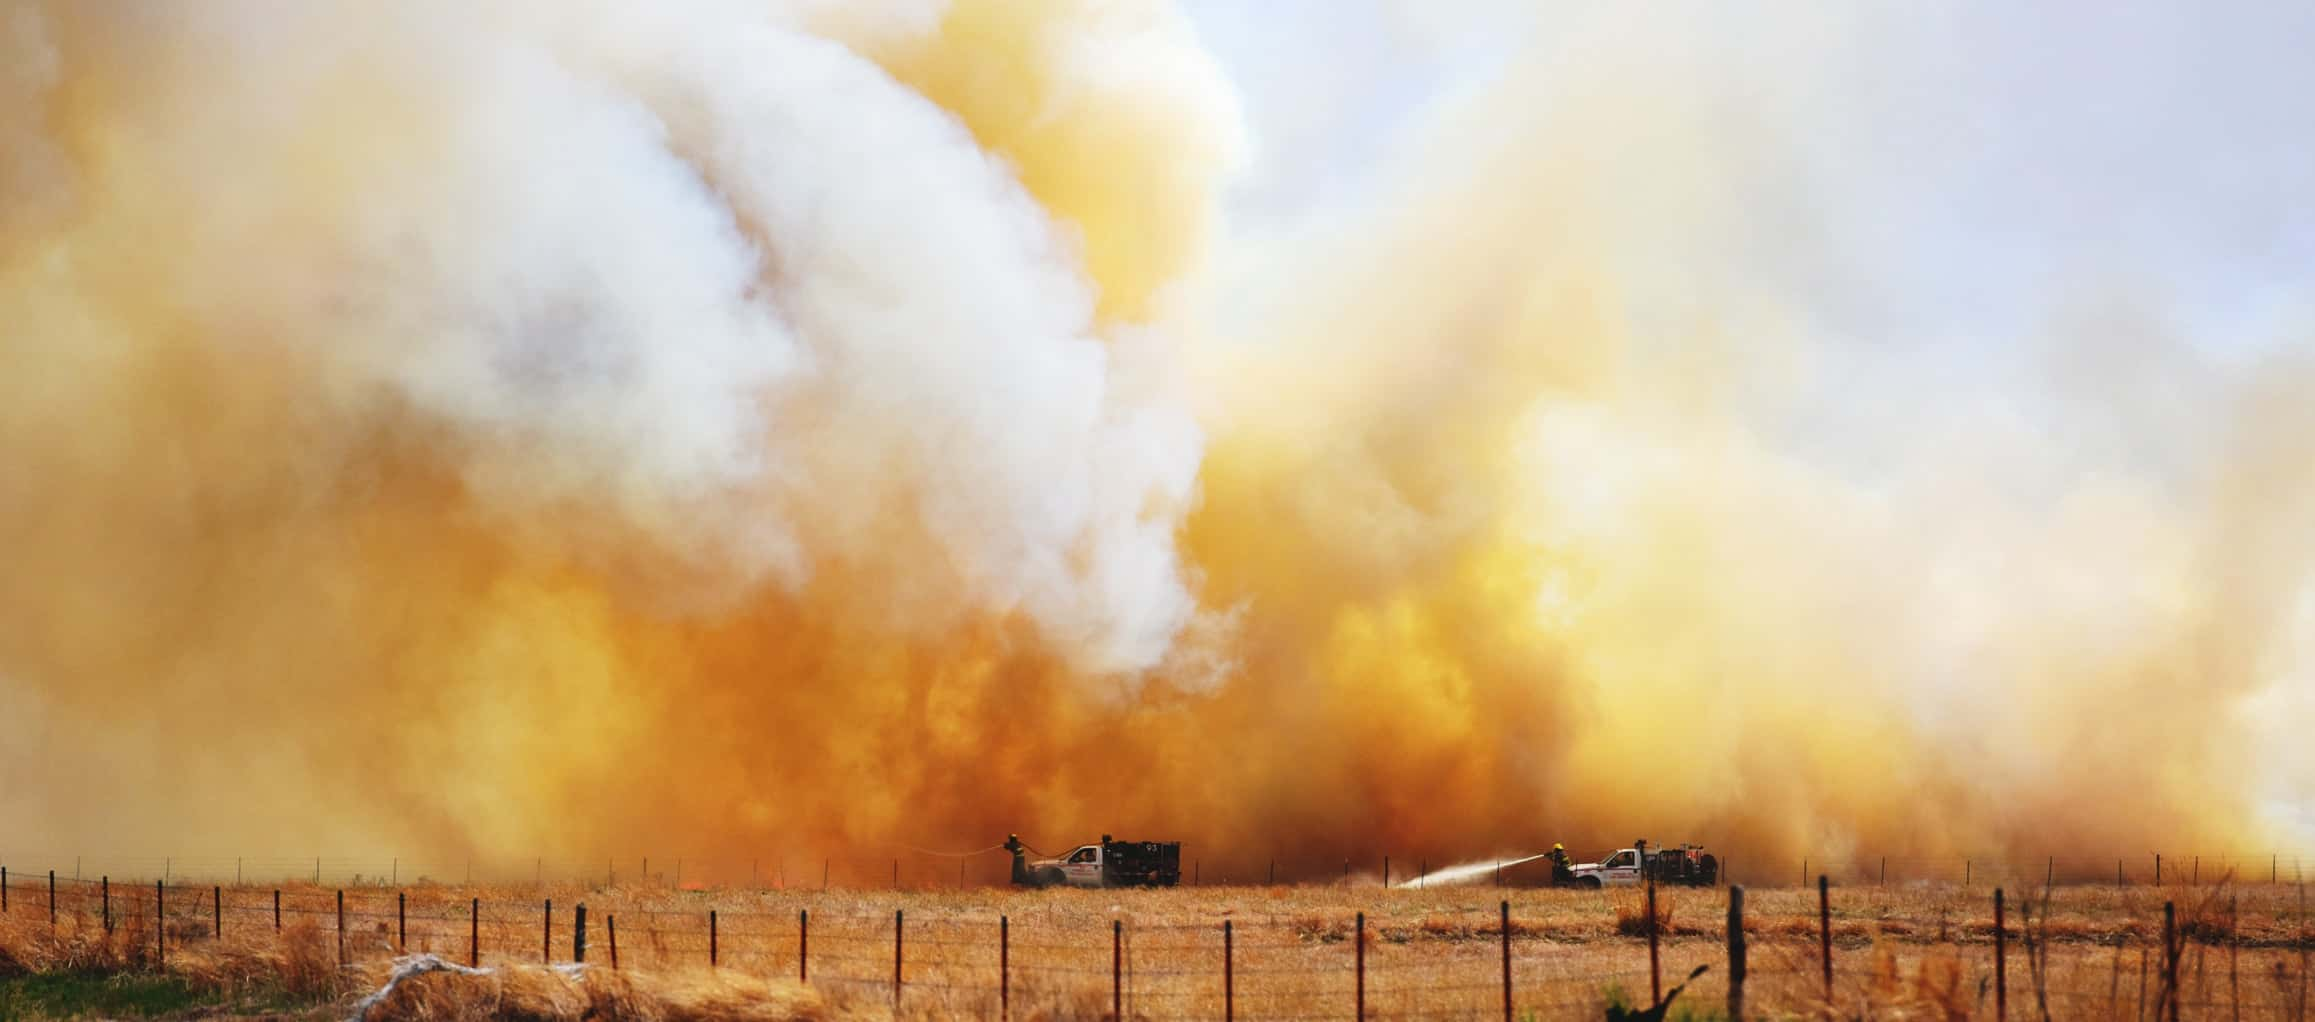 The Texas wind feeds a wildfire in the South Central Plains near Canadian, Texas. (Photo by Laurie Ezzell Brown)